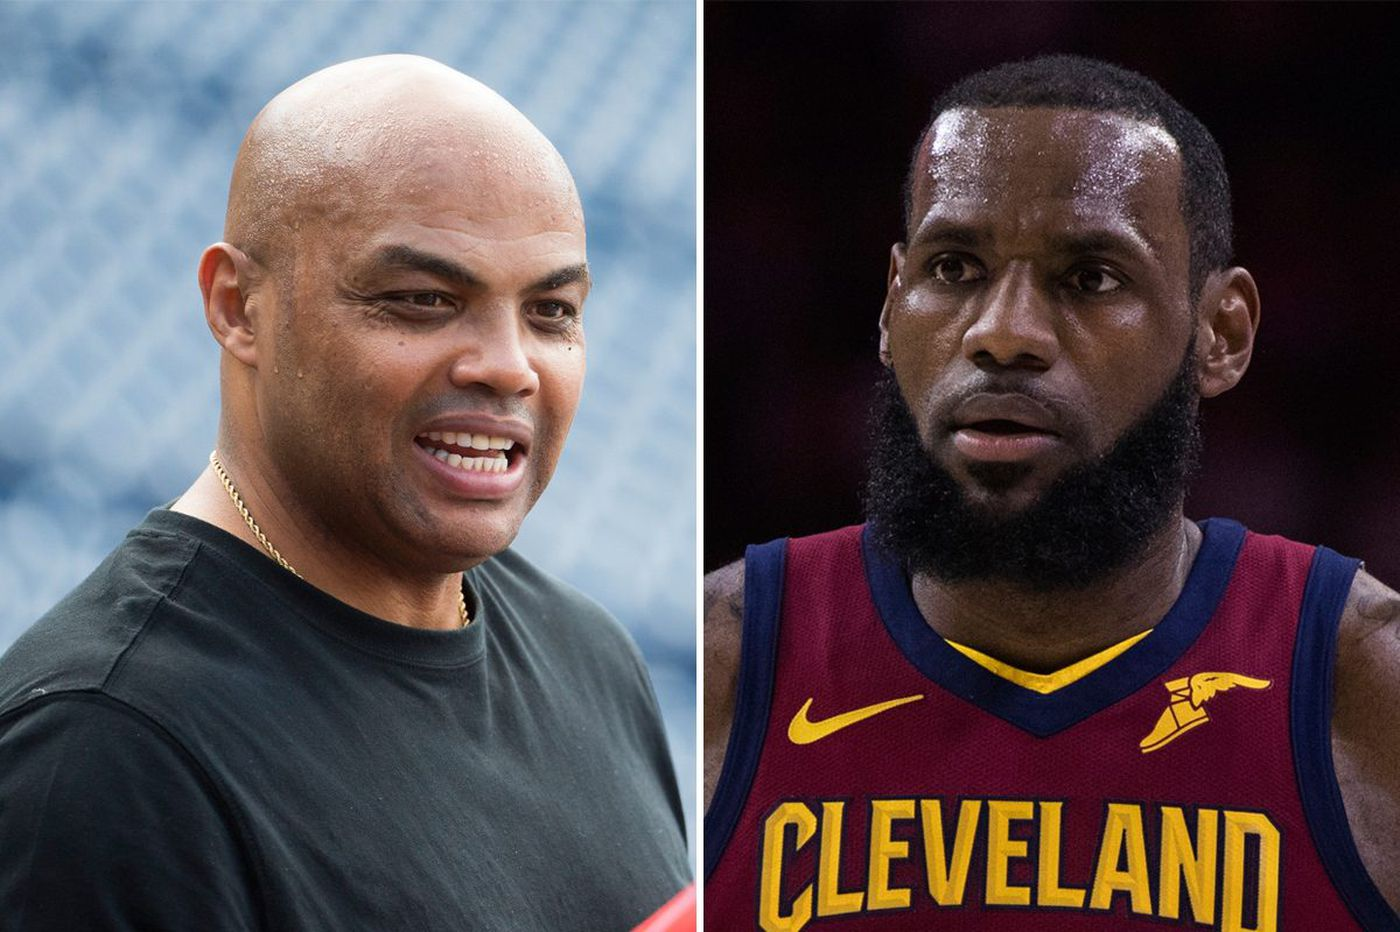 Charles Barkley: LeBron James won't sign with the Sixers